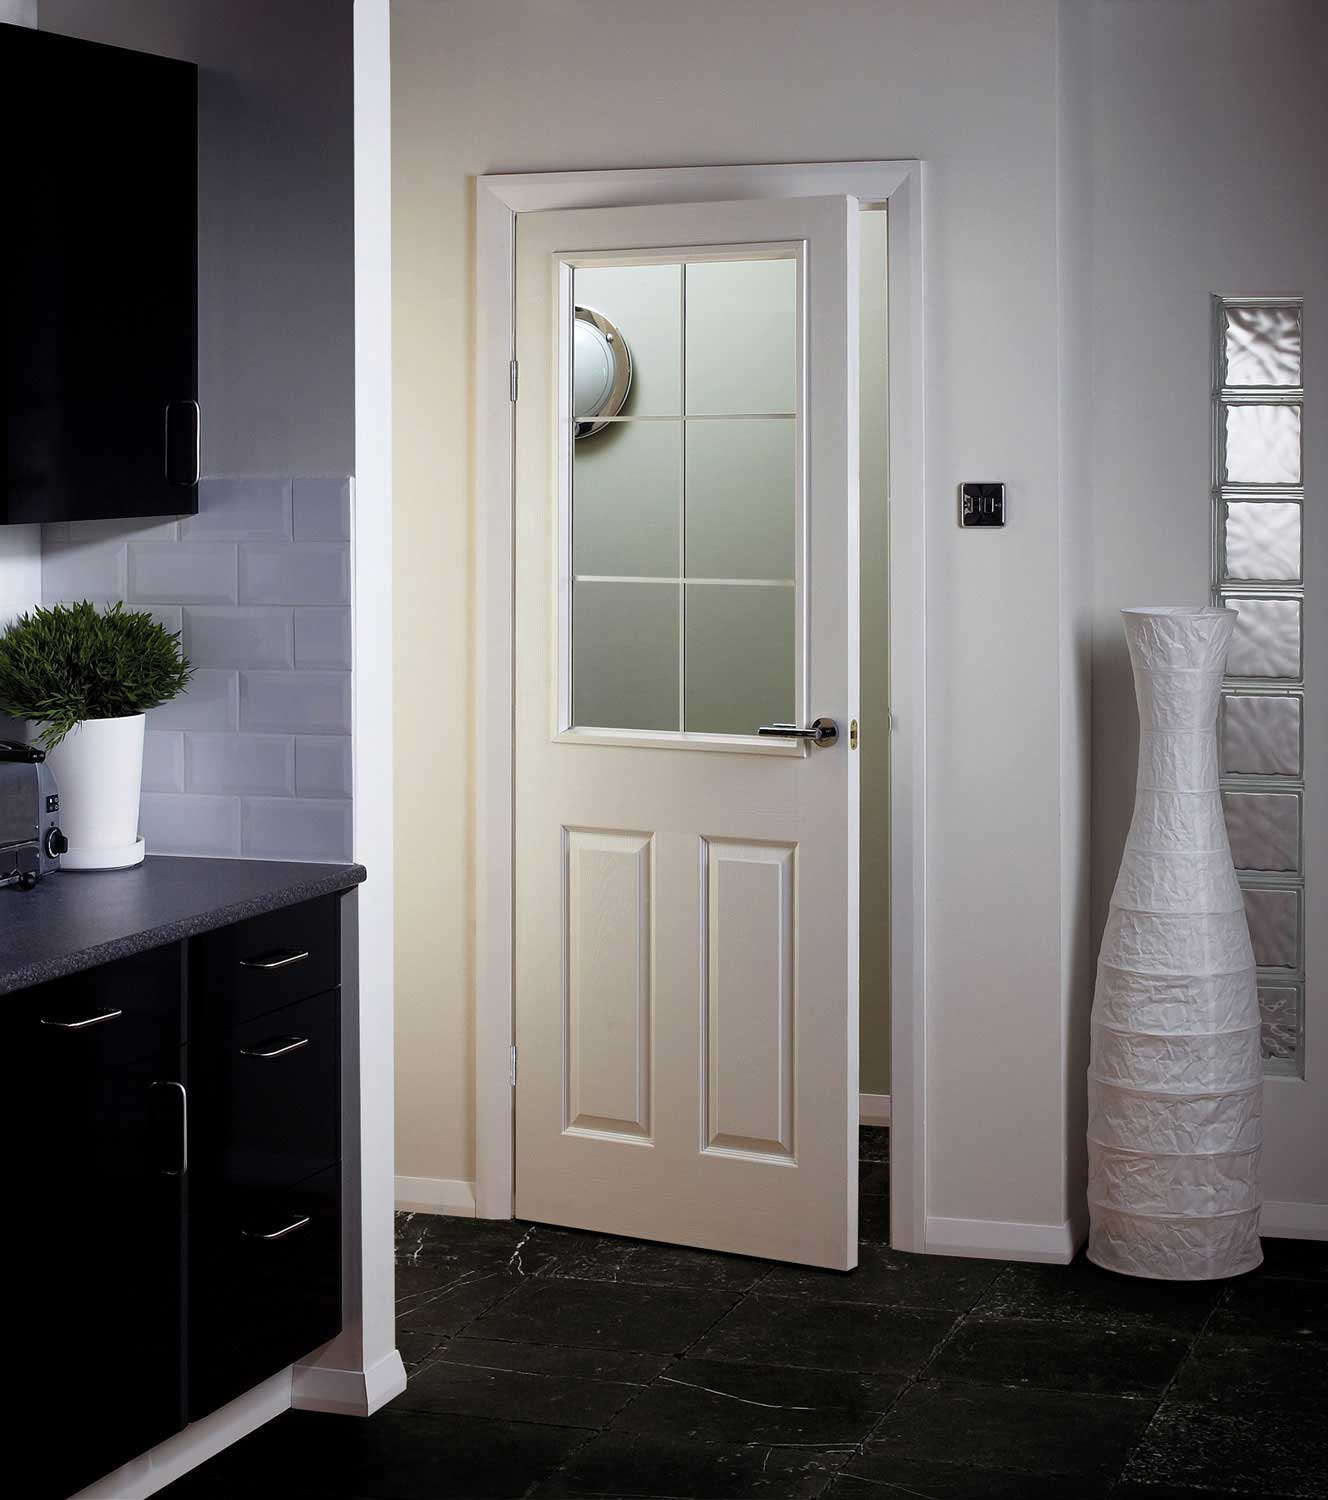 1500 #665C4F Pics Photos Interior Doors With Half Glass White image Doors Half Glass 42031328